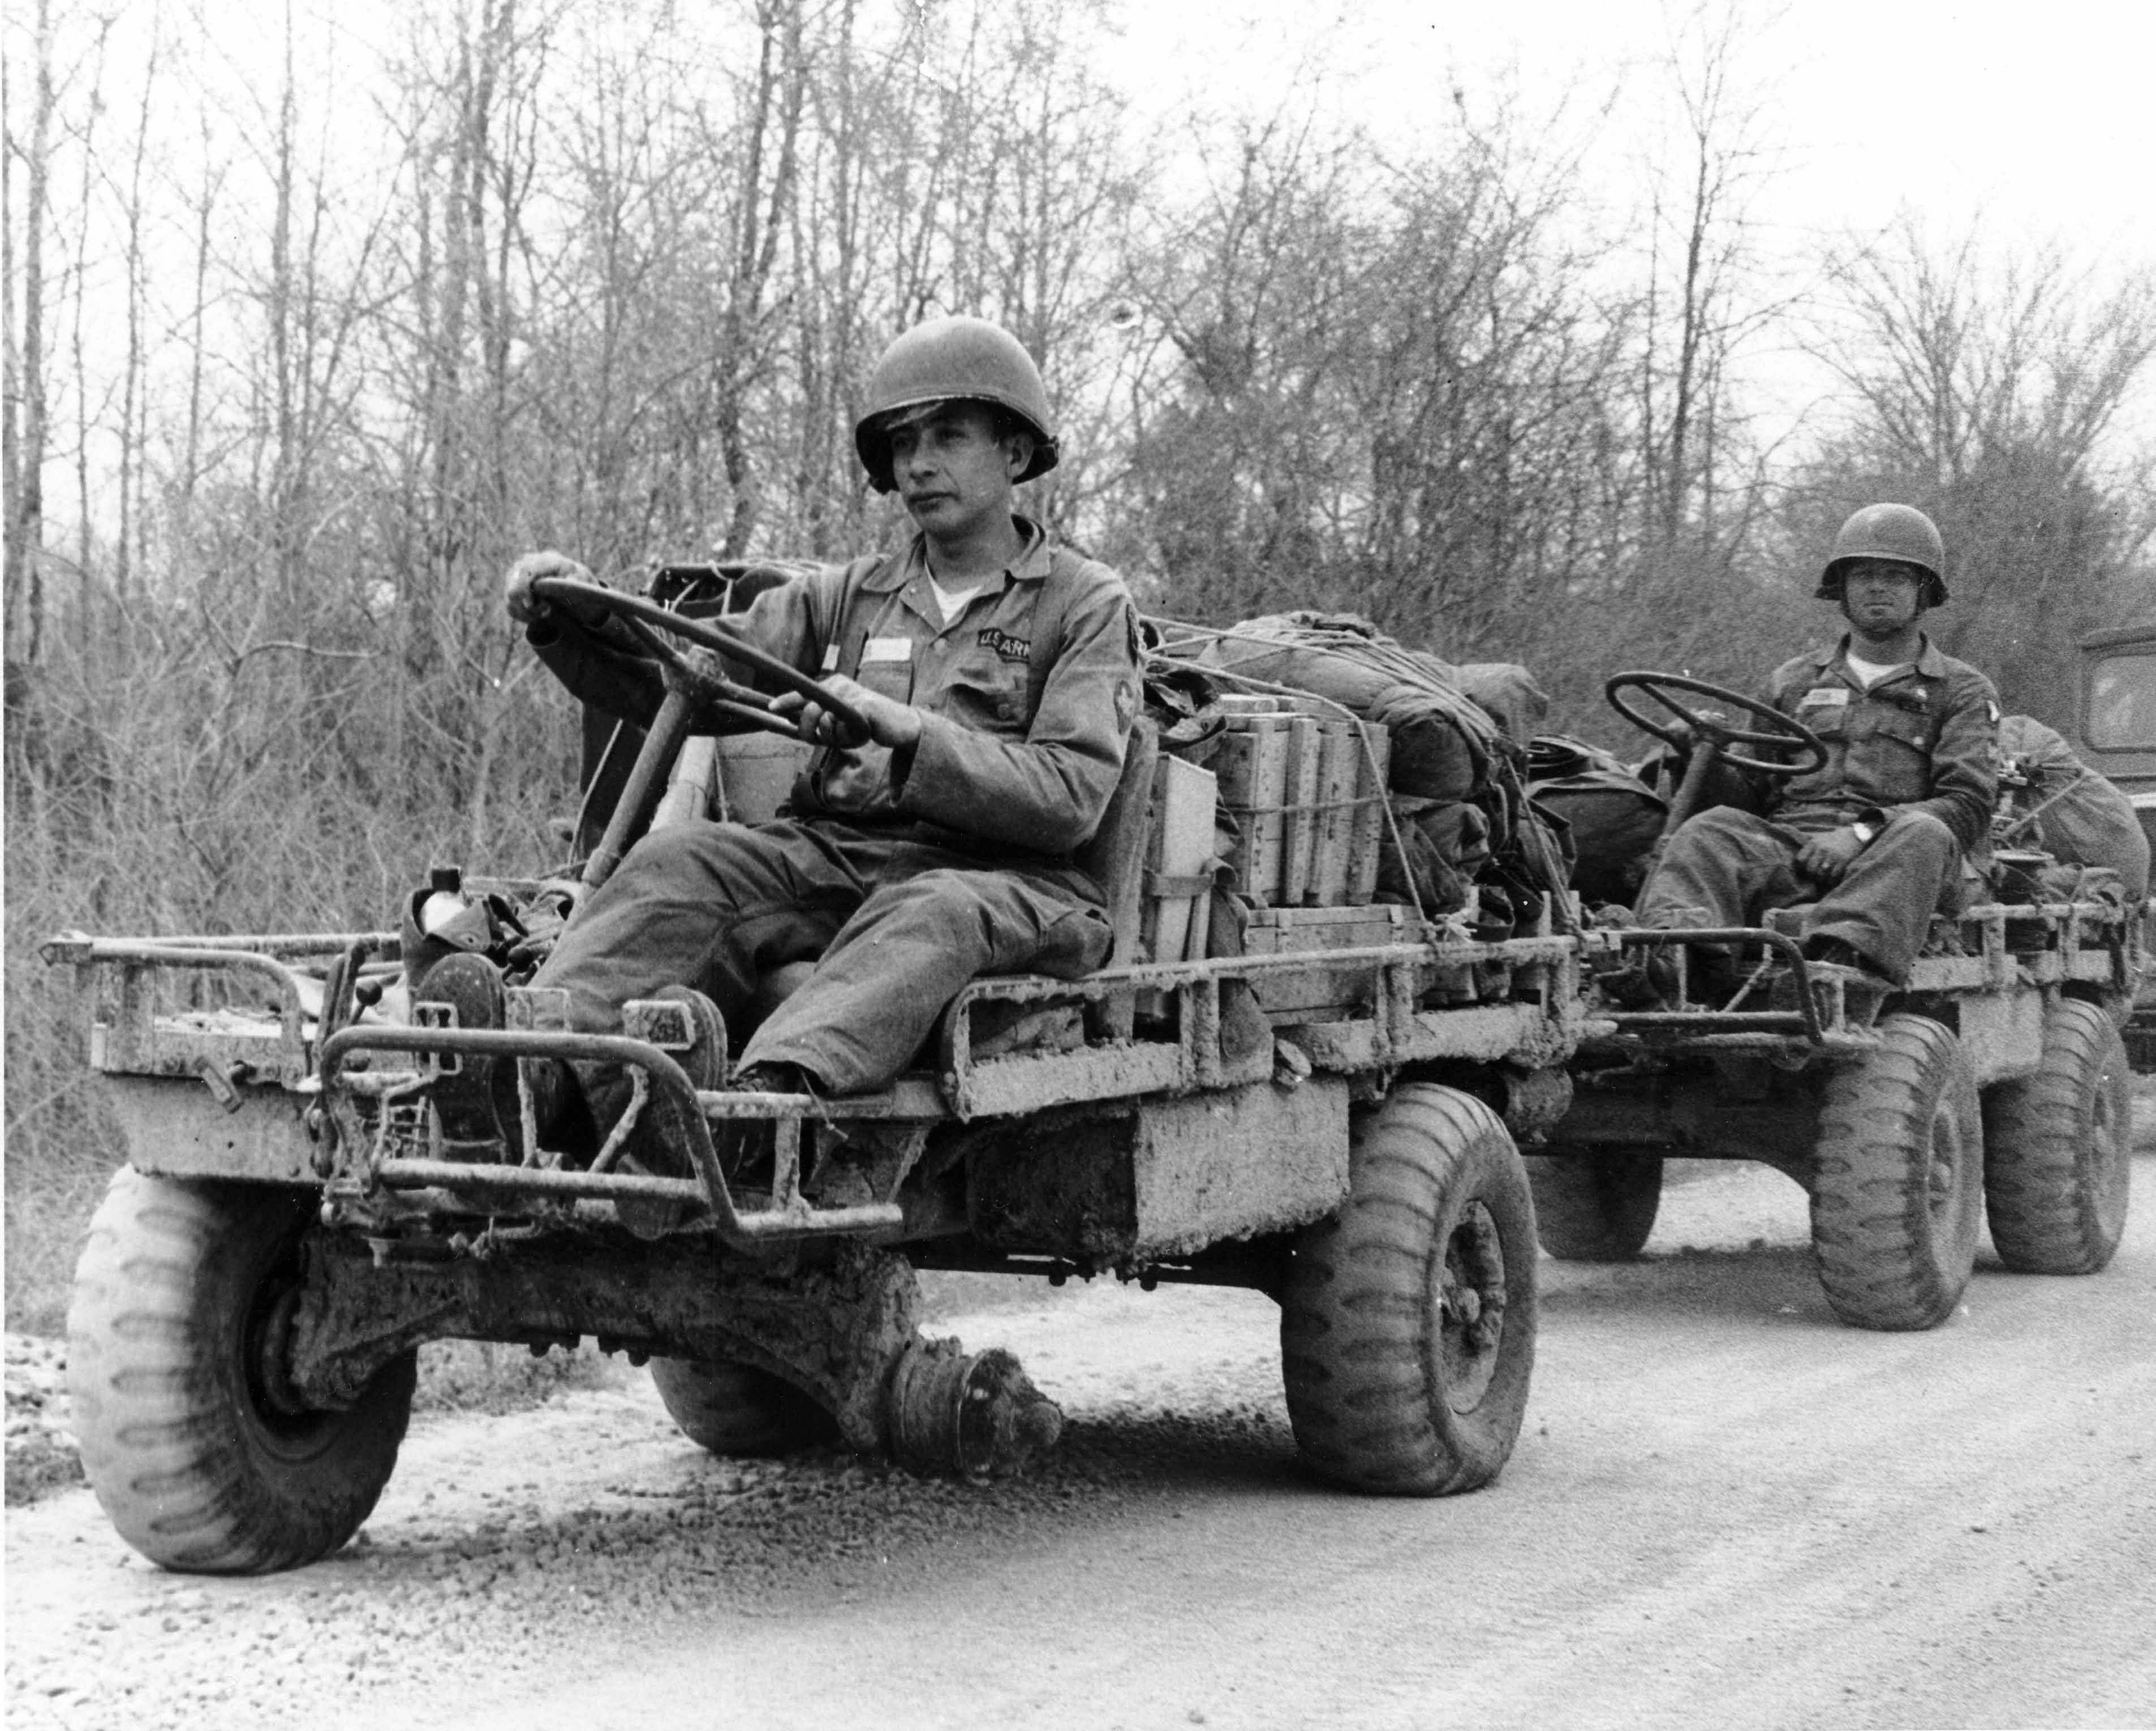 Jeep M274 Mechanical Mule - some say it's the grand-daddy of